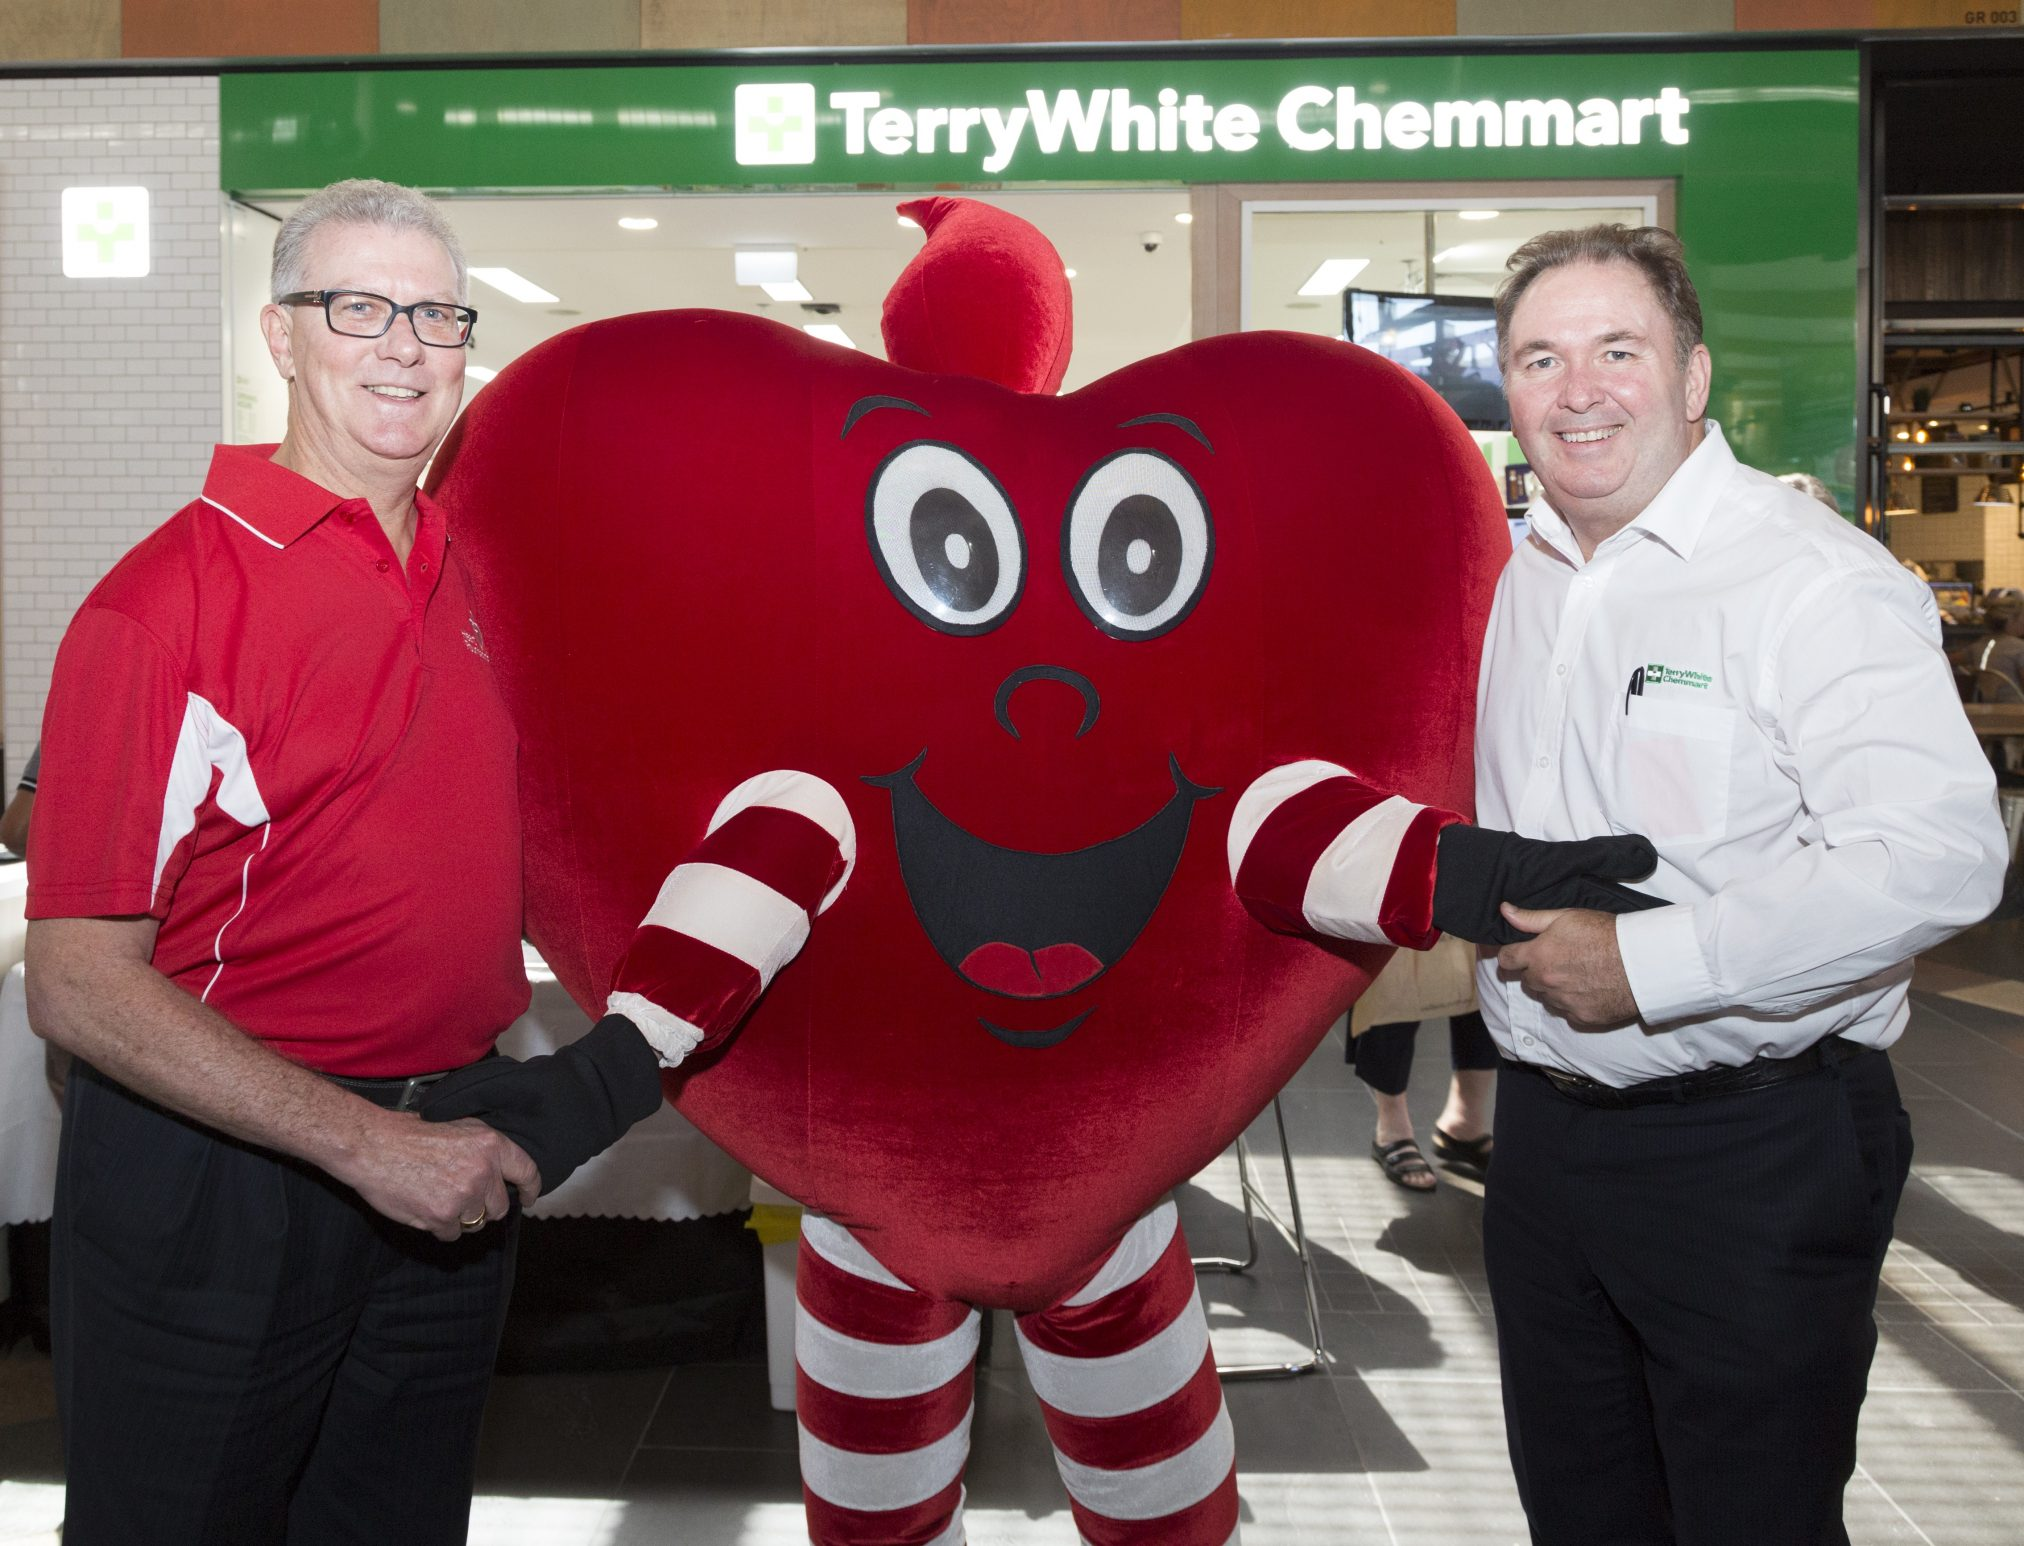 National CEO of the Heart Foundation, Adjunct Professor John Kelly AM, and TerryWhite Chemmart CEO, Anthony White